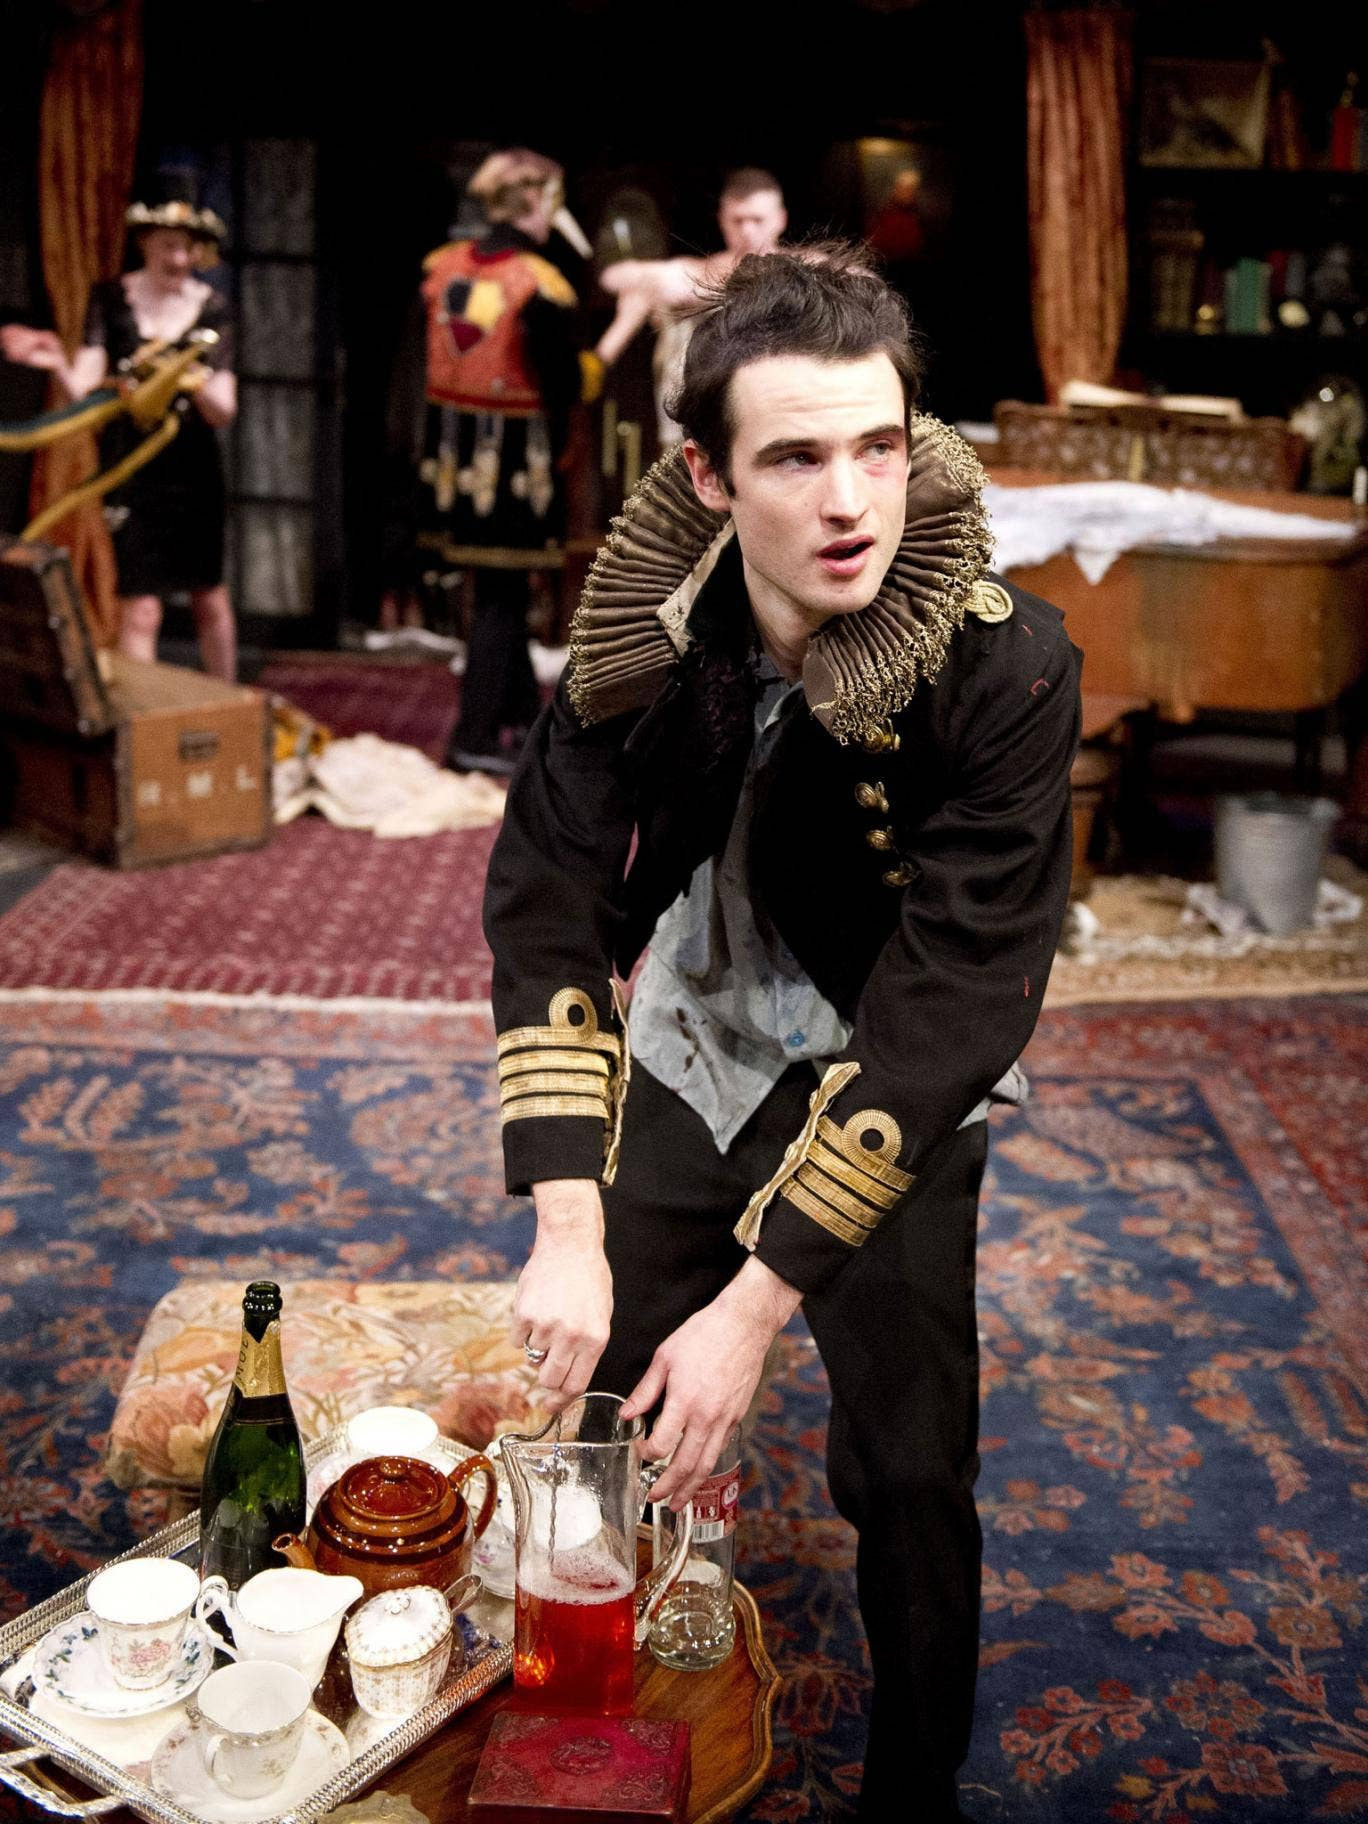 Tired frills: Tom Sturridge in No Quarter is a mouthpiece for platitudes